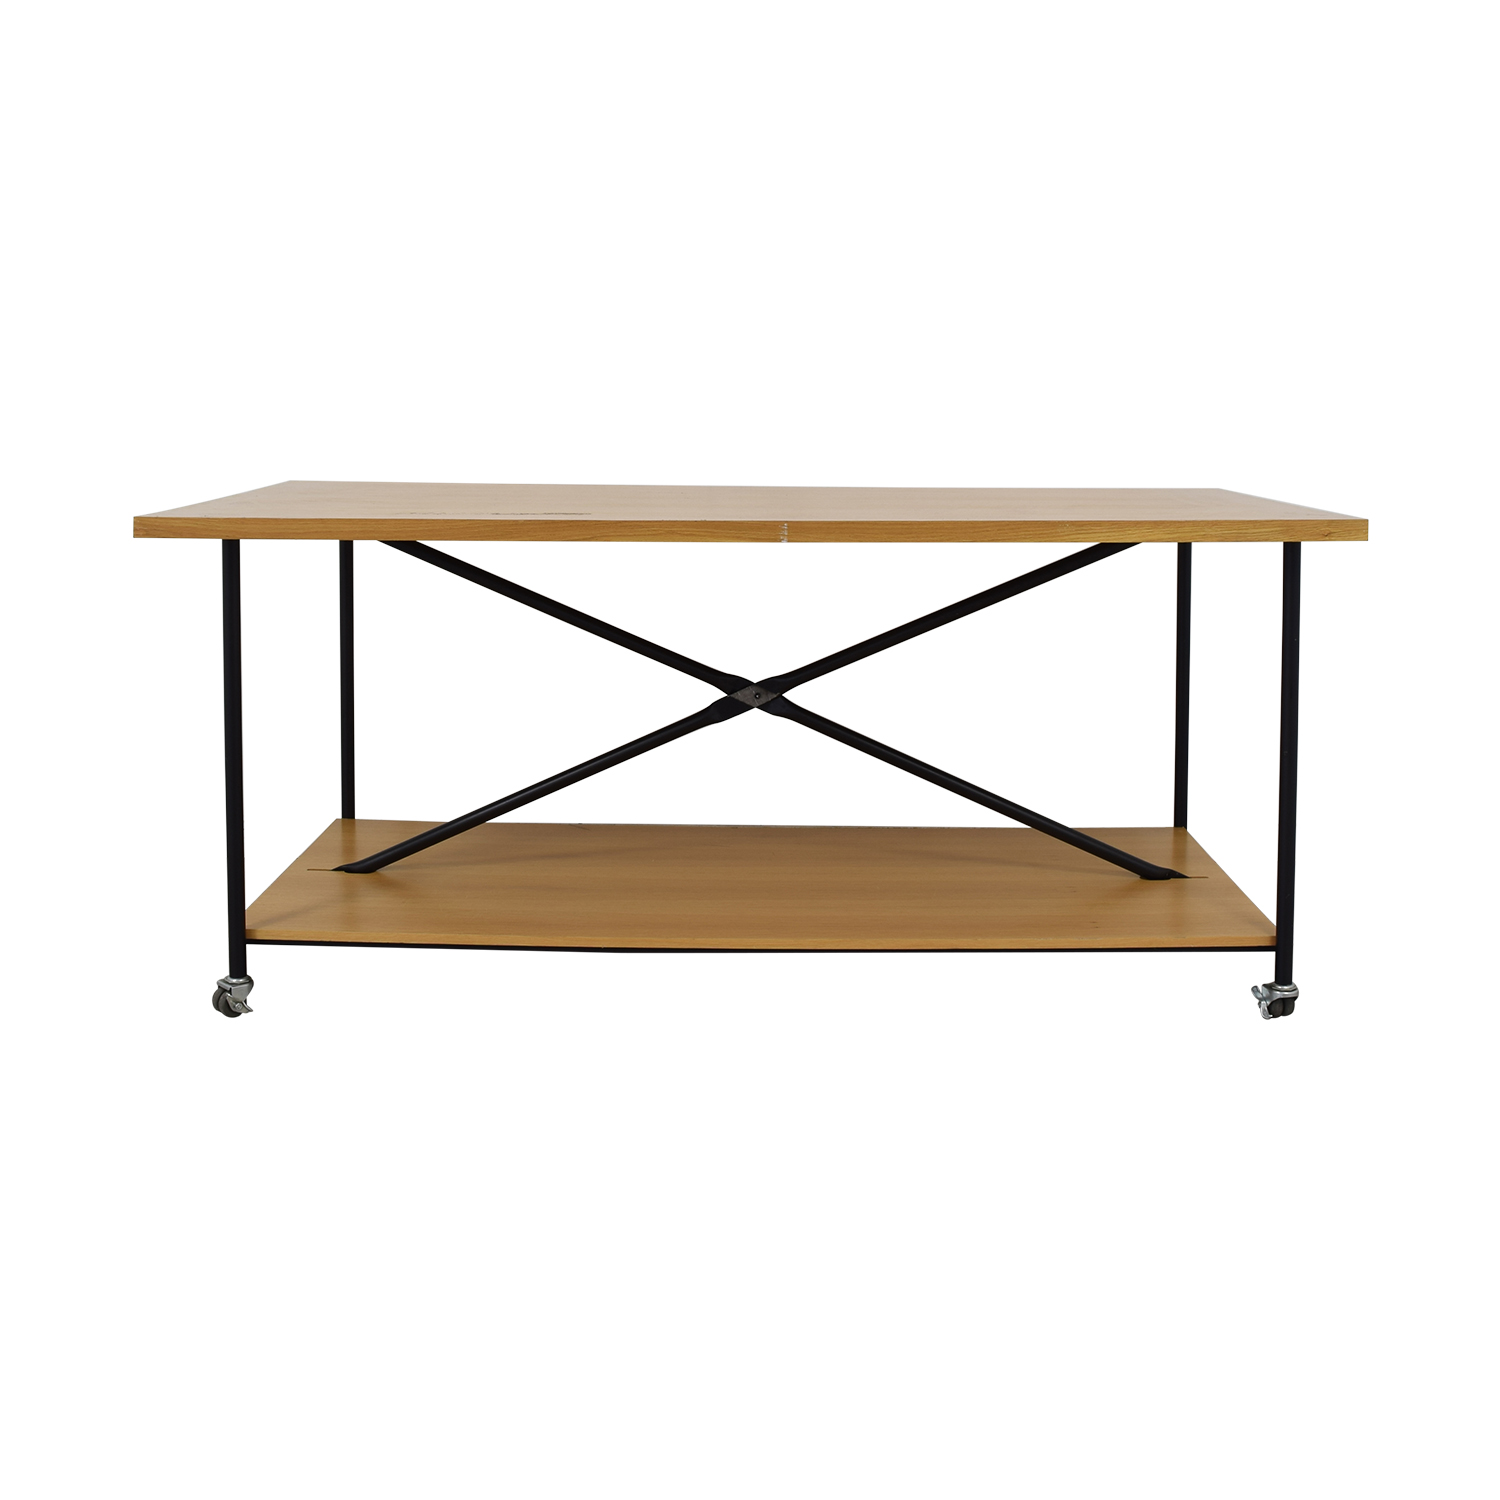 buy  Wooden Work Table with Wheels online